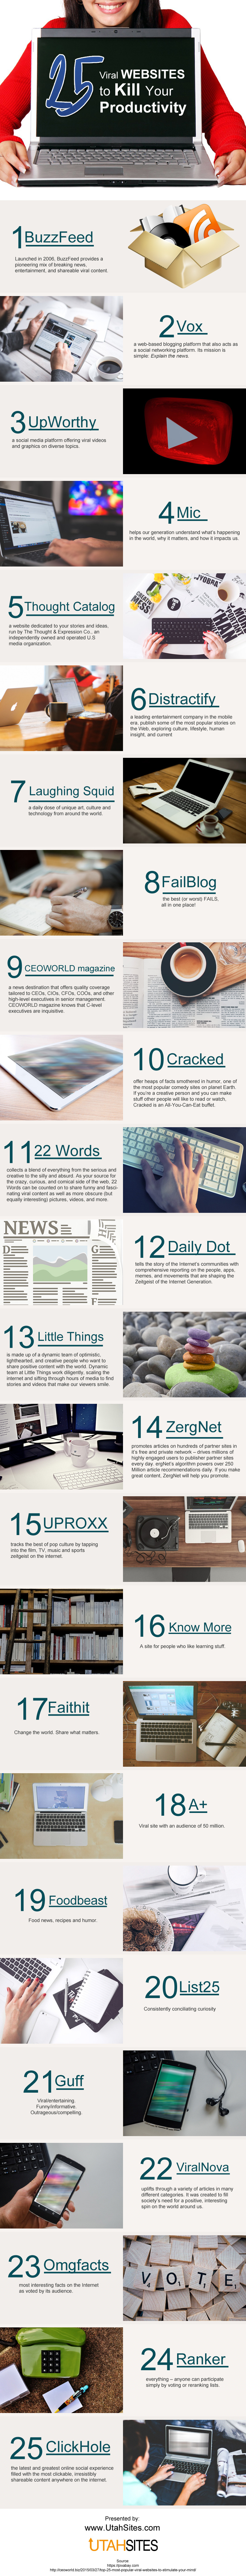 25 Viral Websites to Kill Your Productivity [infographic]